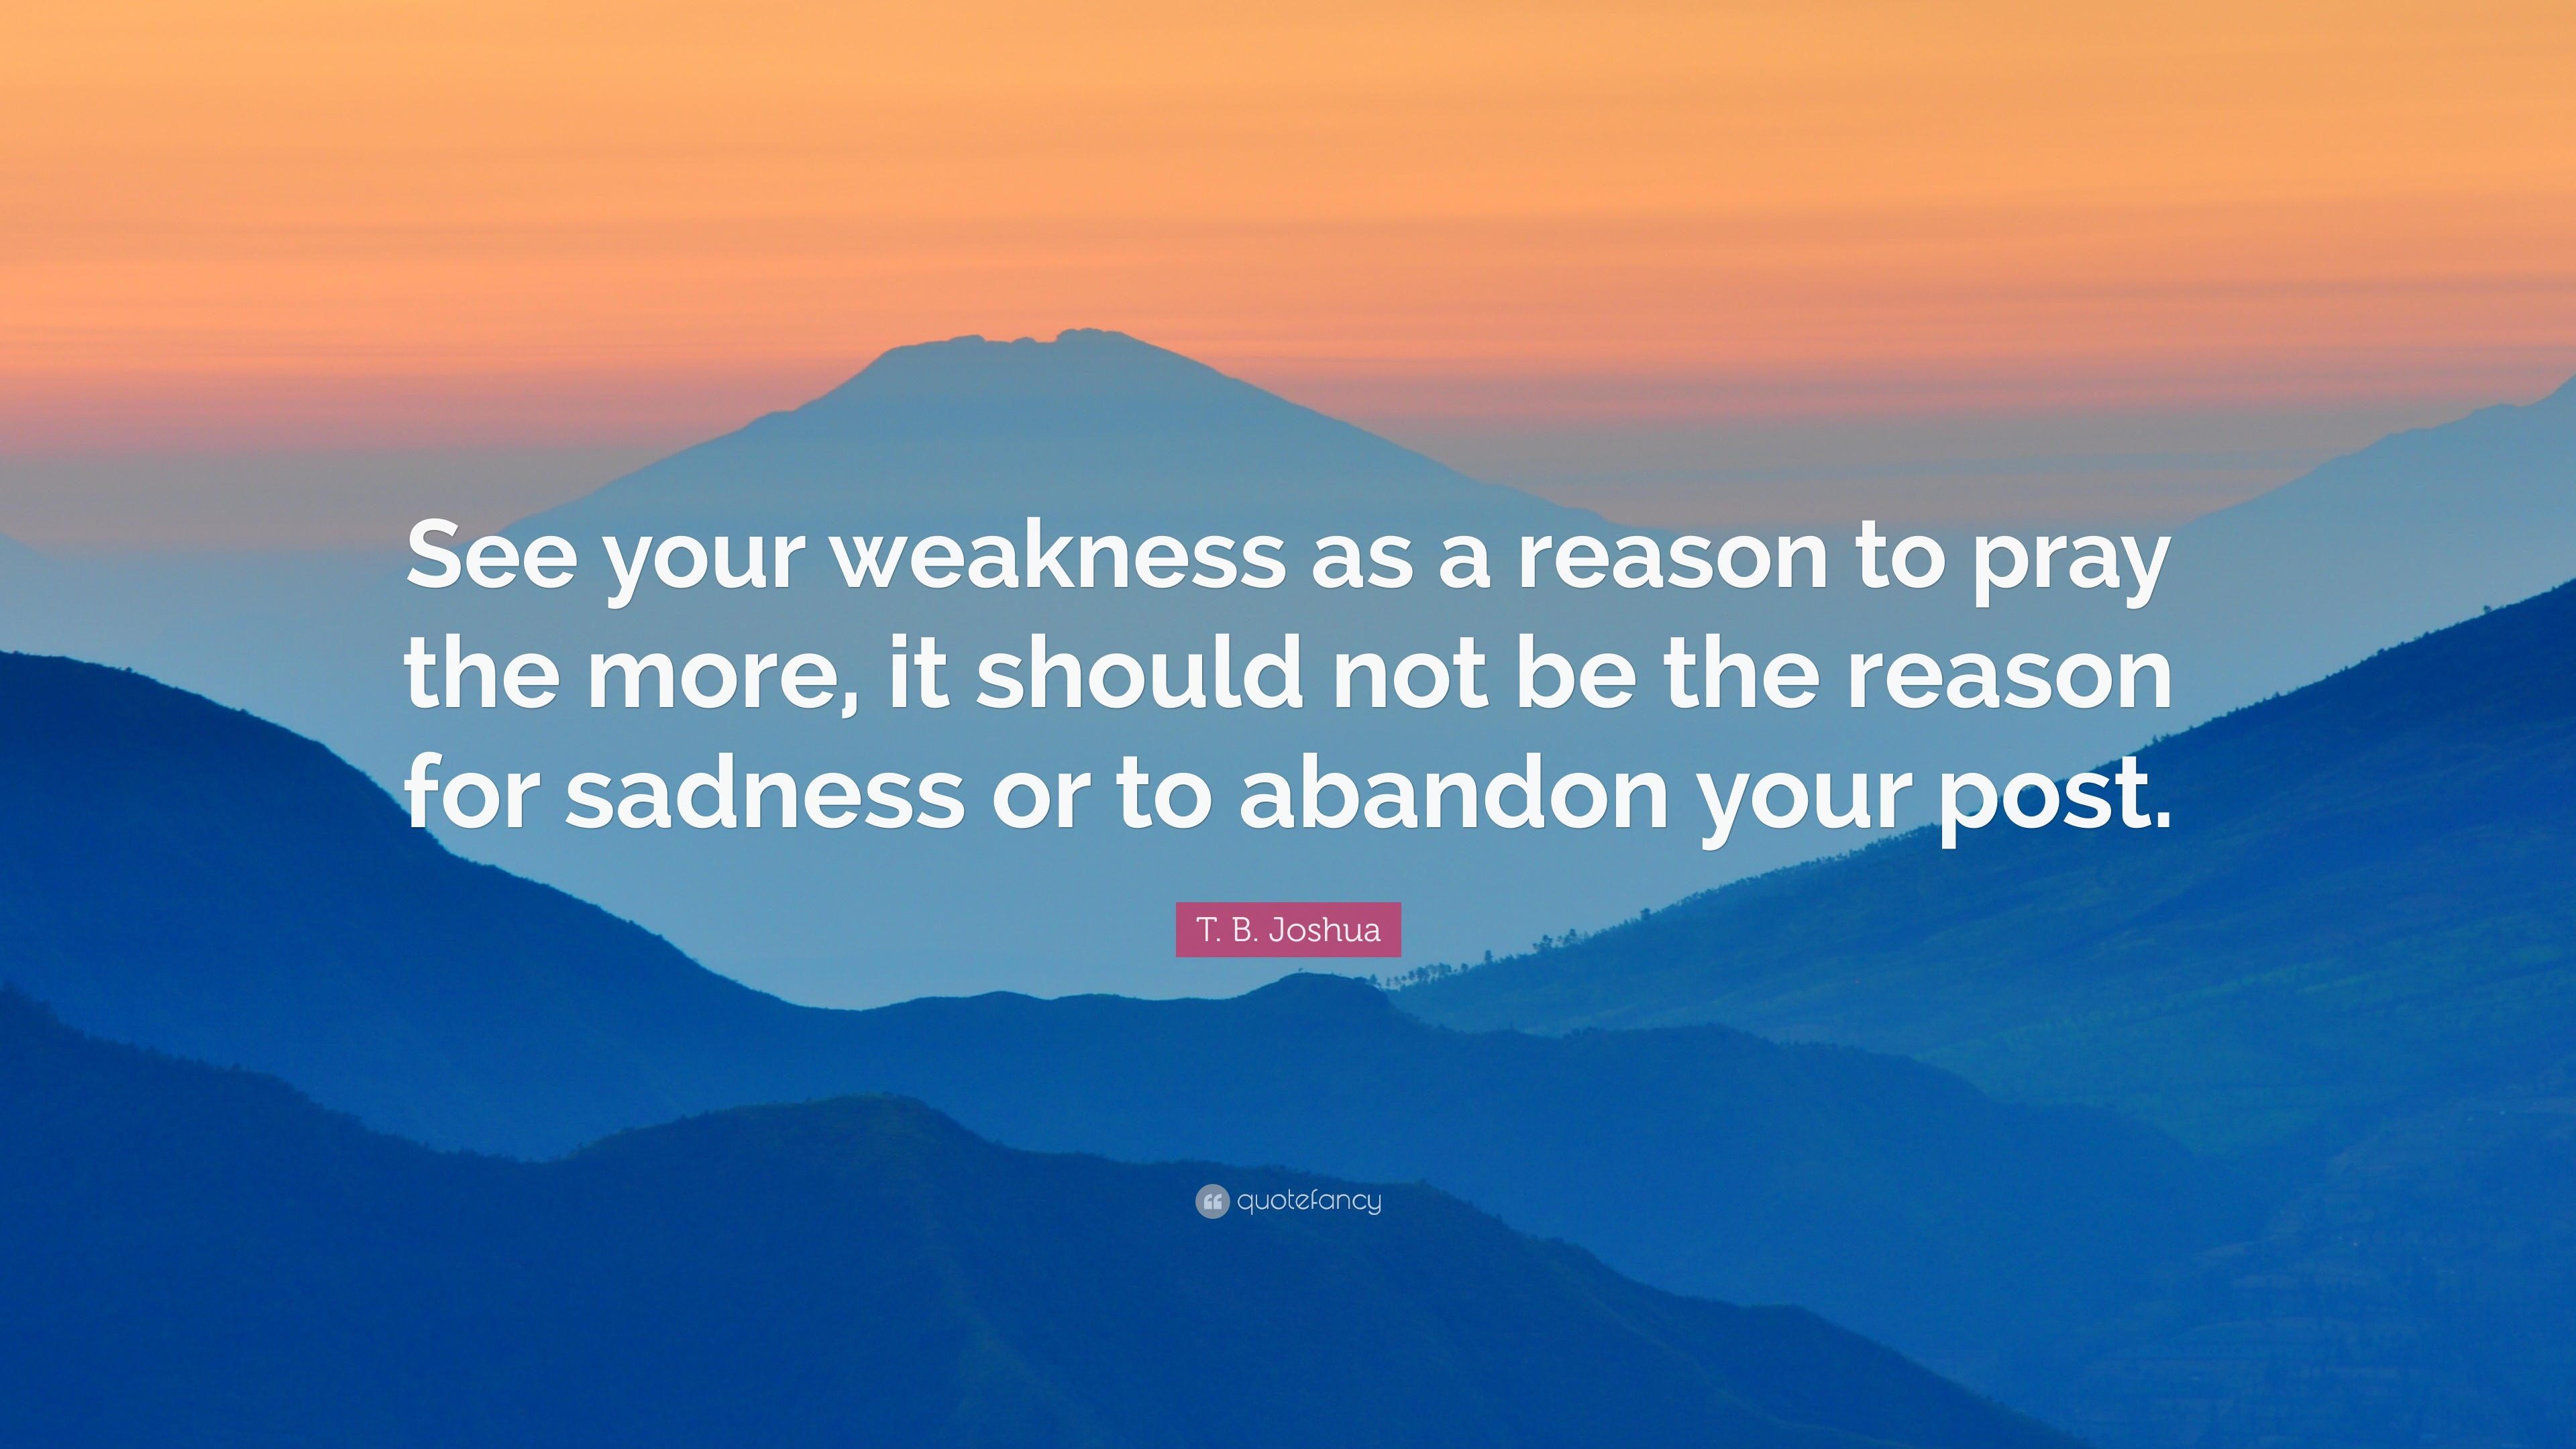 T B Joshua Quote See Your Weakness As A Reason To Pray The More It Should Not Be The Reason For Sadness Or To Abandon Your Post 9 Wallpapers Quotefancy